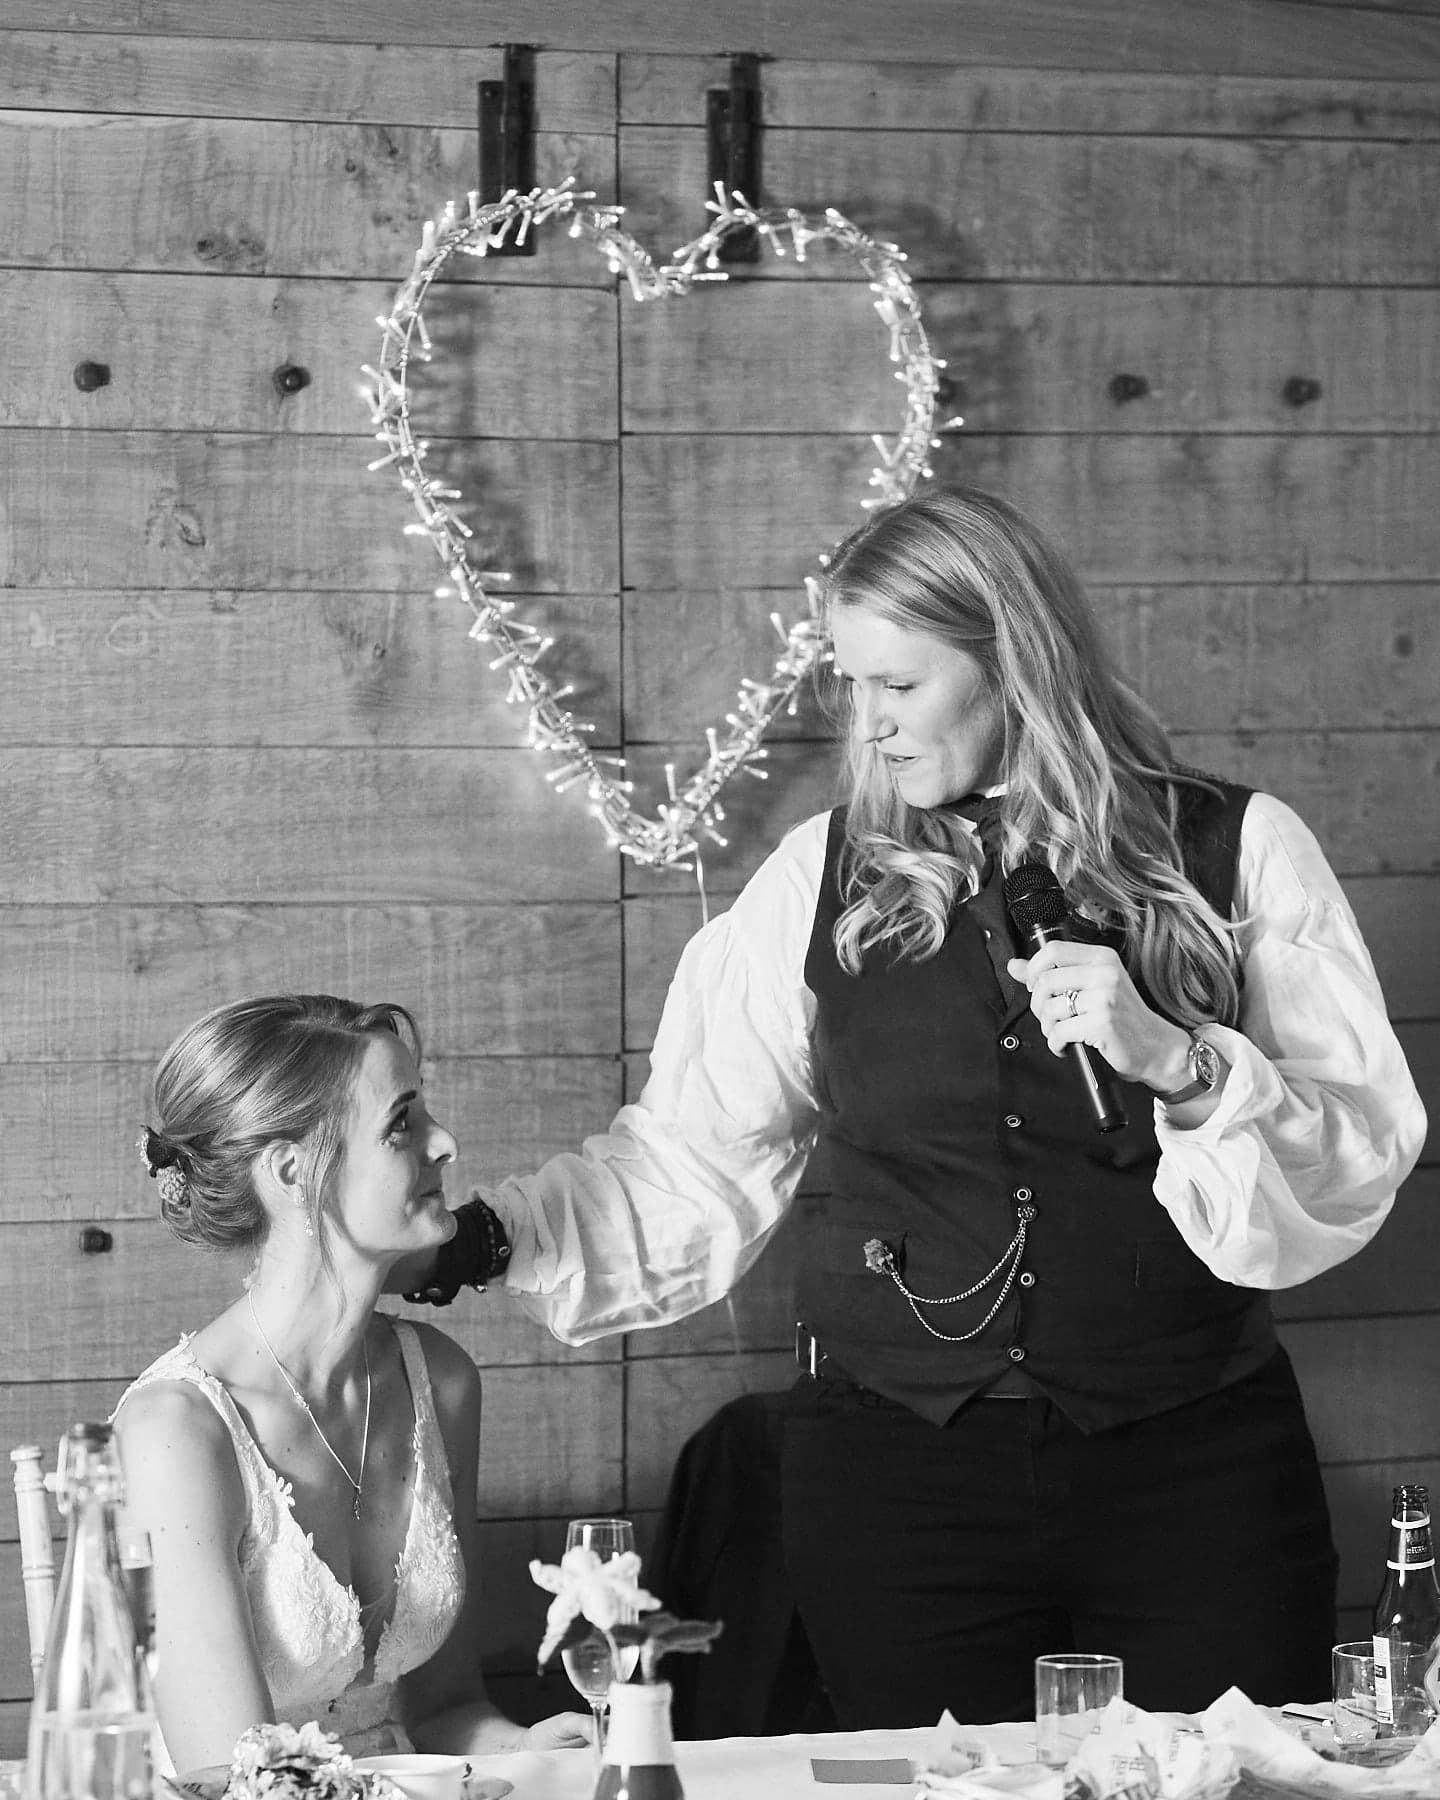 A tender moment as the bride talks about her partner during a Woodhall Spa wedding.